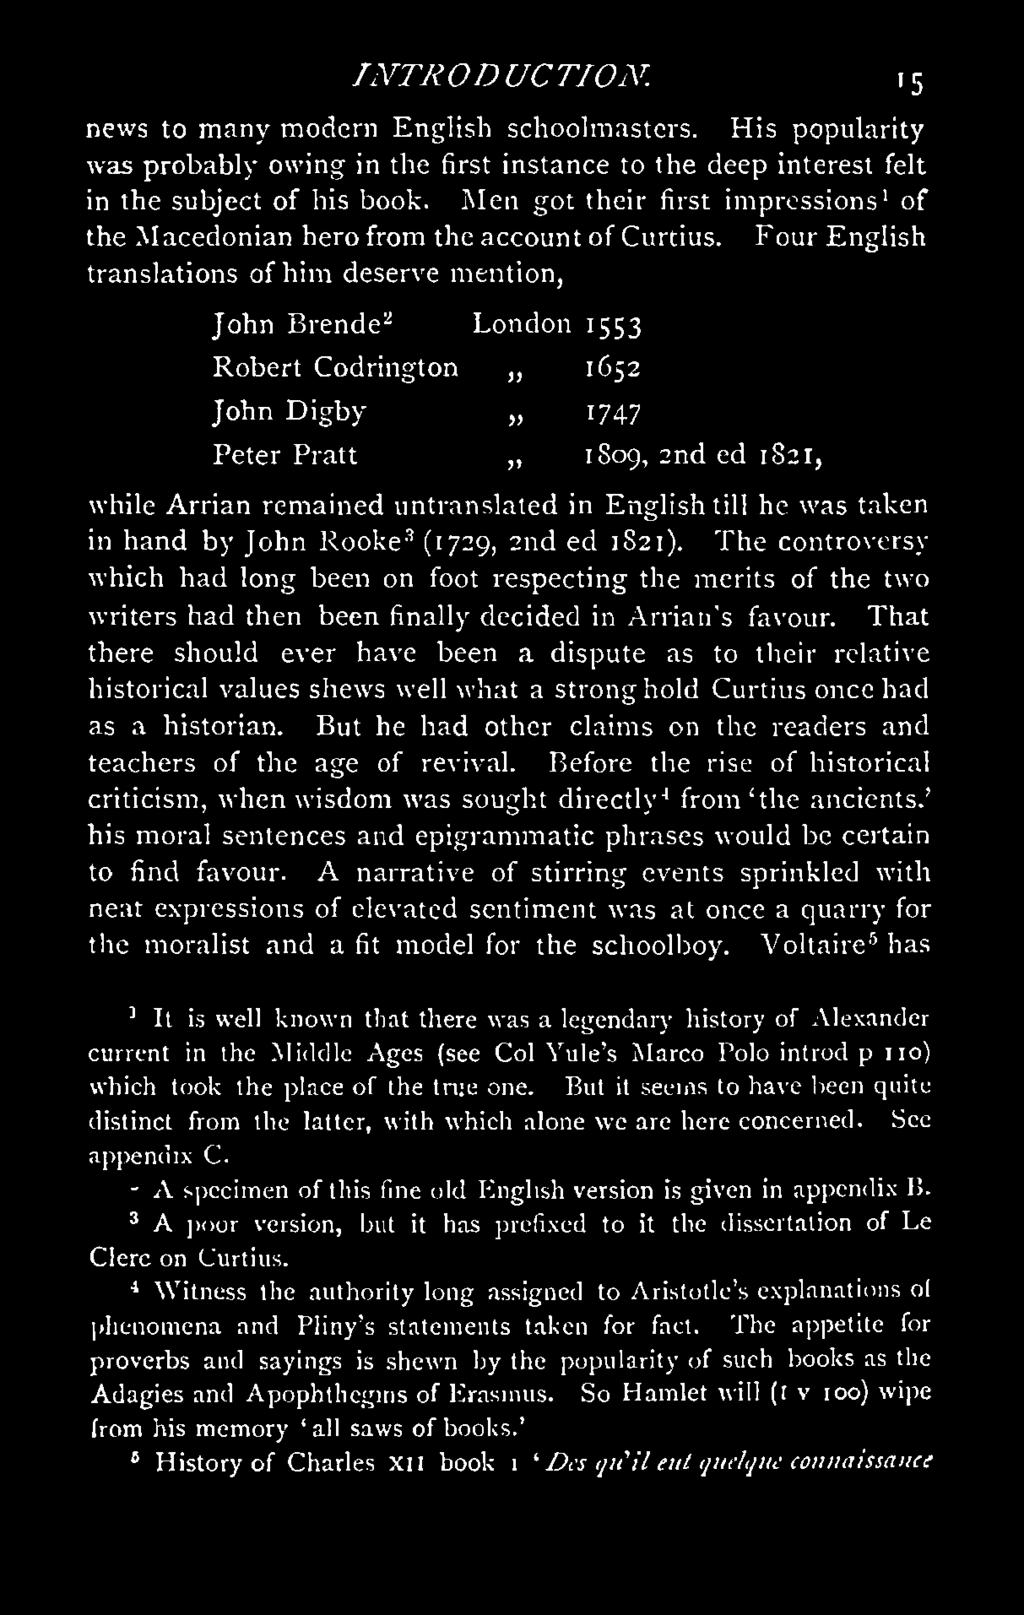 Four English translations of him deserve mention, John Brende2 London 1553 Robert Codrington 1652 John D igby 1747 Peter Pratt 1809, 2nd ed 1821, while Arrian remained untranslated in English till he